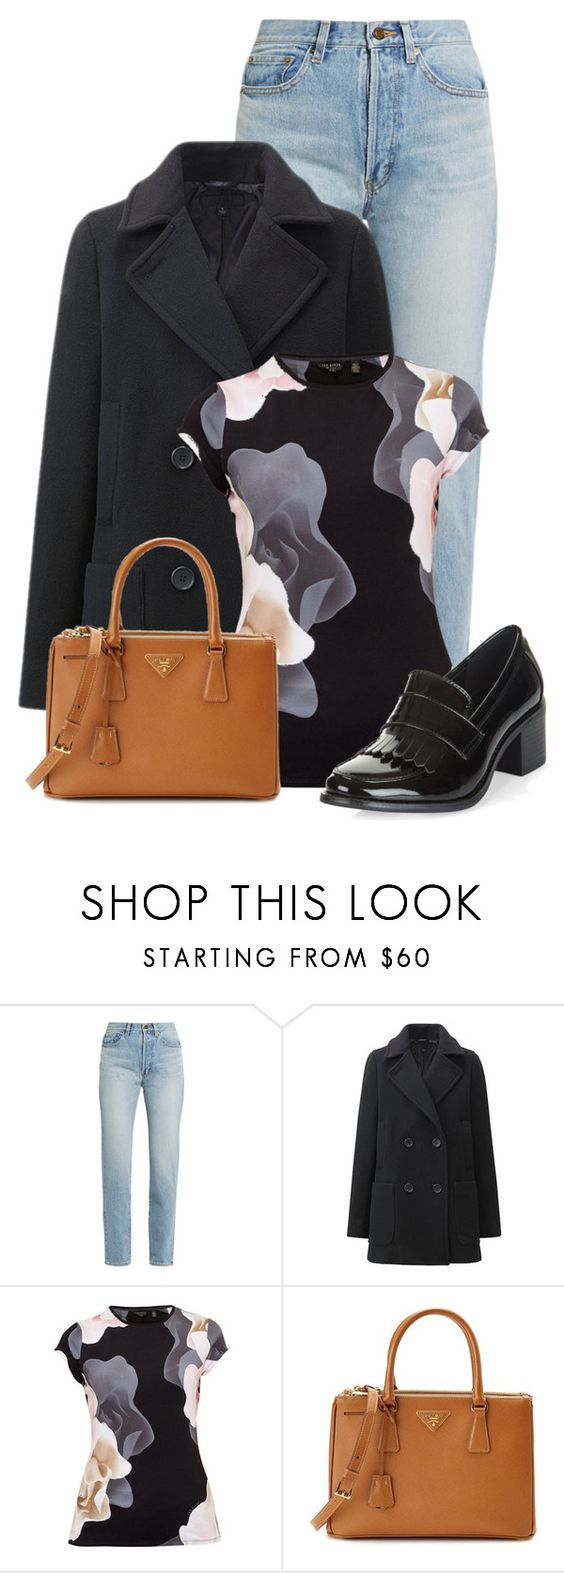 """Untitled #19710"" by nanette-253 ❤ liked on Polyvore featuring Yves Saint Laurent, Uniqlo, Ted Baker, Prada and New Look"